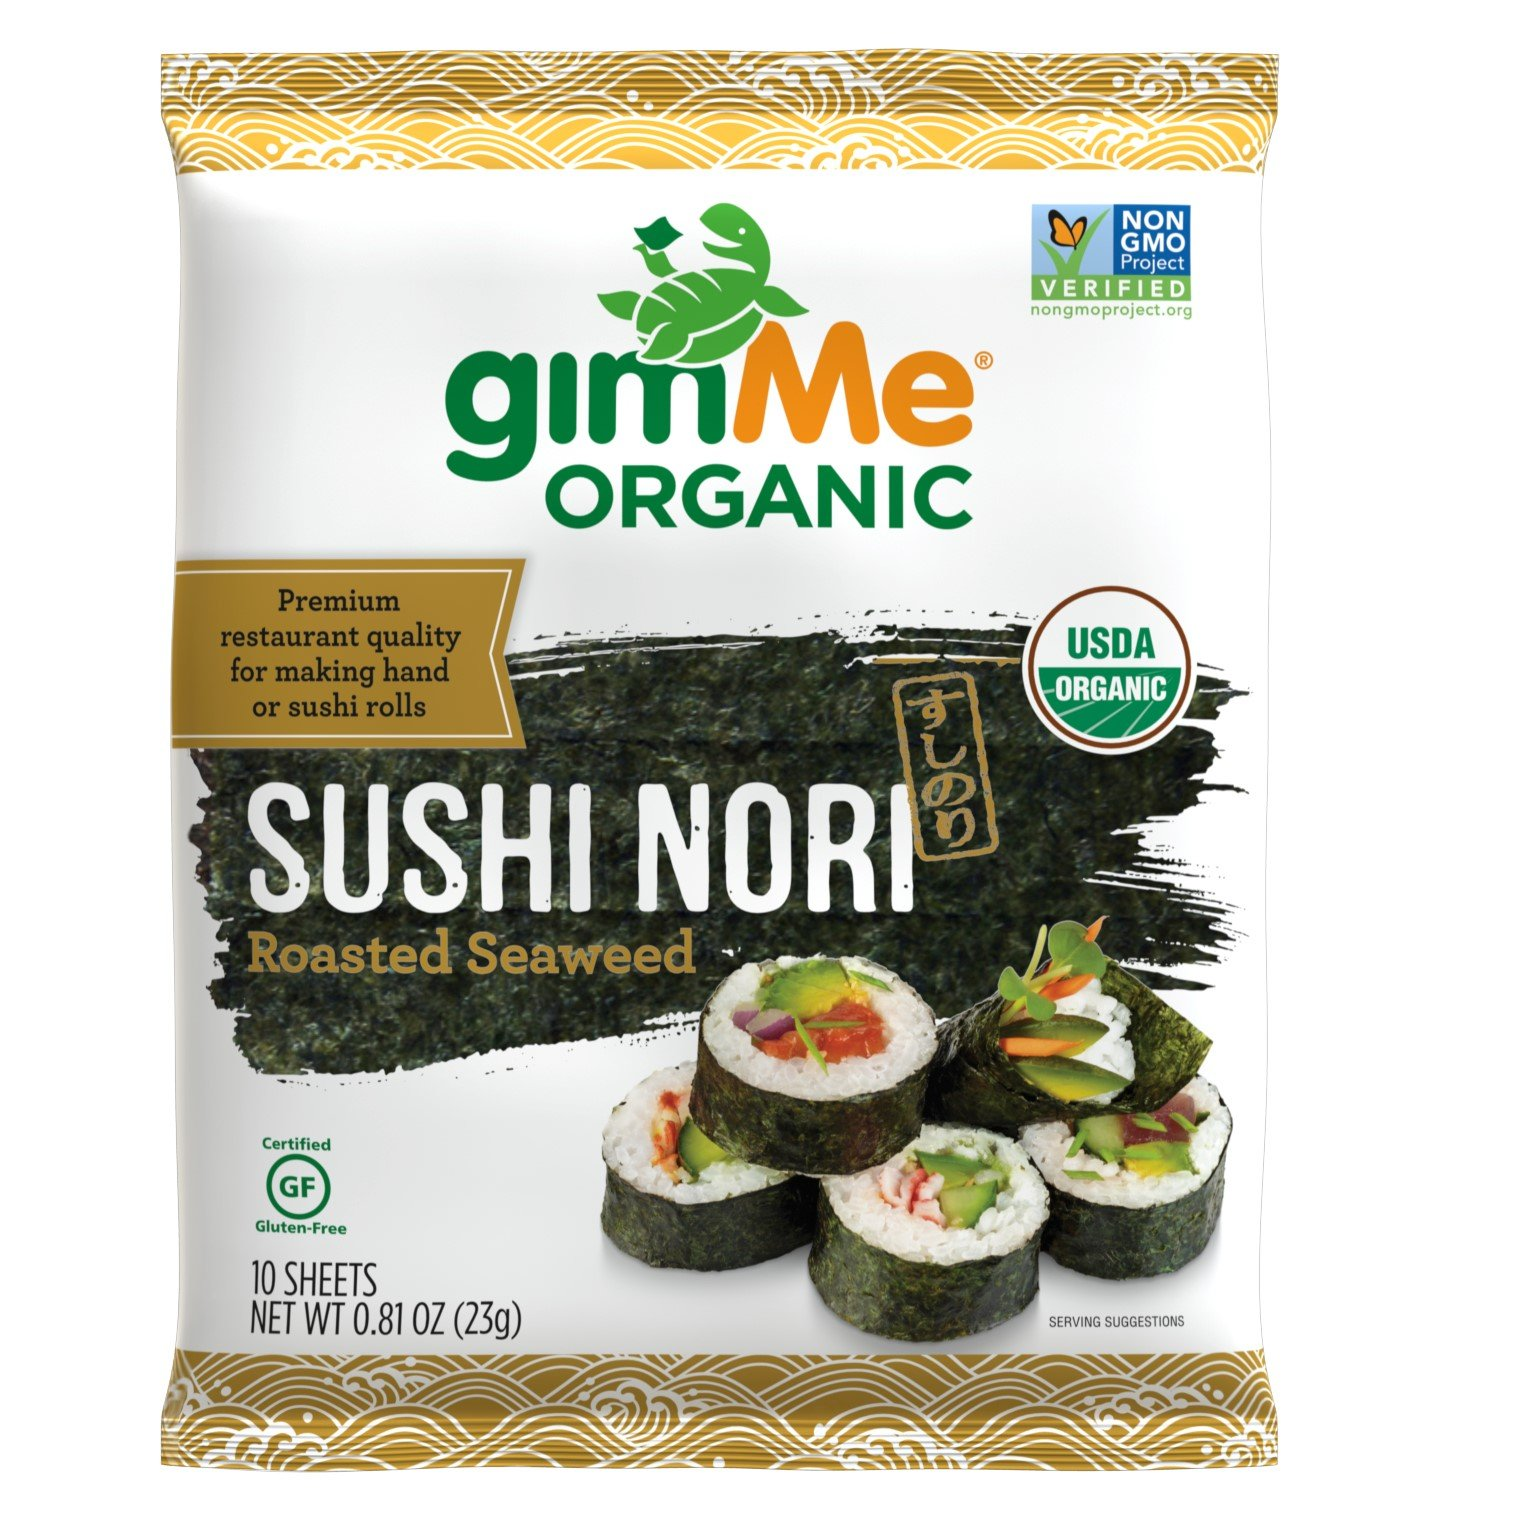 gimMe Snacks Organic Premium Roasted Seaweed Sushi Nori, 0.81 Ounce - 1 Pack